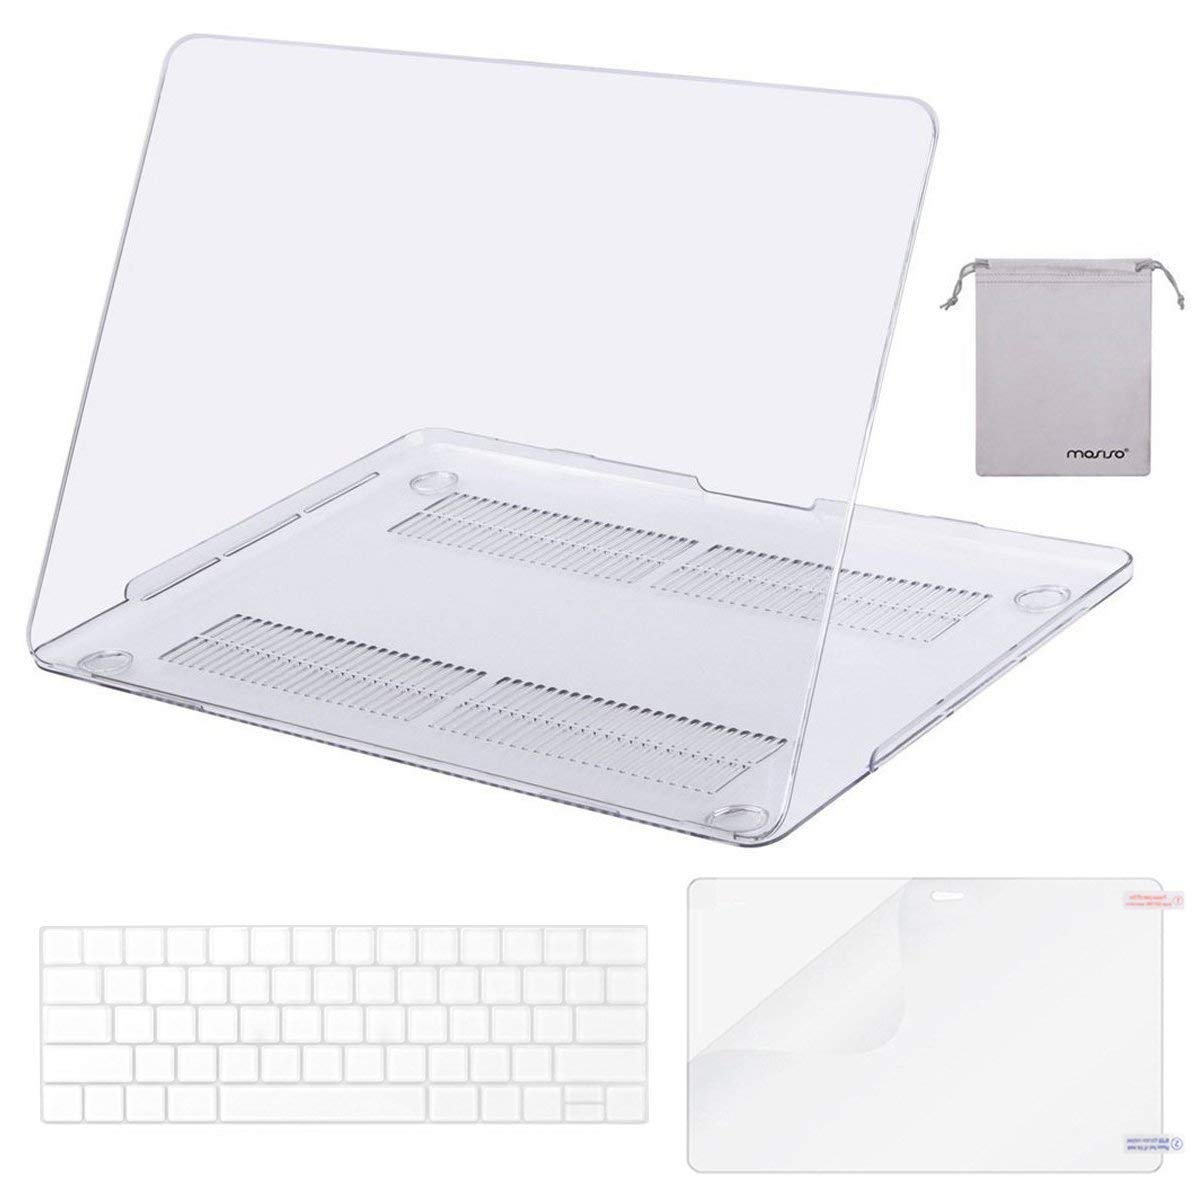 MOSISO MacBook Pro 15 Case 2018 2017 2016 Release A1990/A1707 Touch Bar Models, Plastic Hard Shell & Keyboard Cover & Screen Protector & Storage Bag Compatible Newest Mac Pro 15 Inch, Crystal Clear by MOSISO (Image #1)